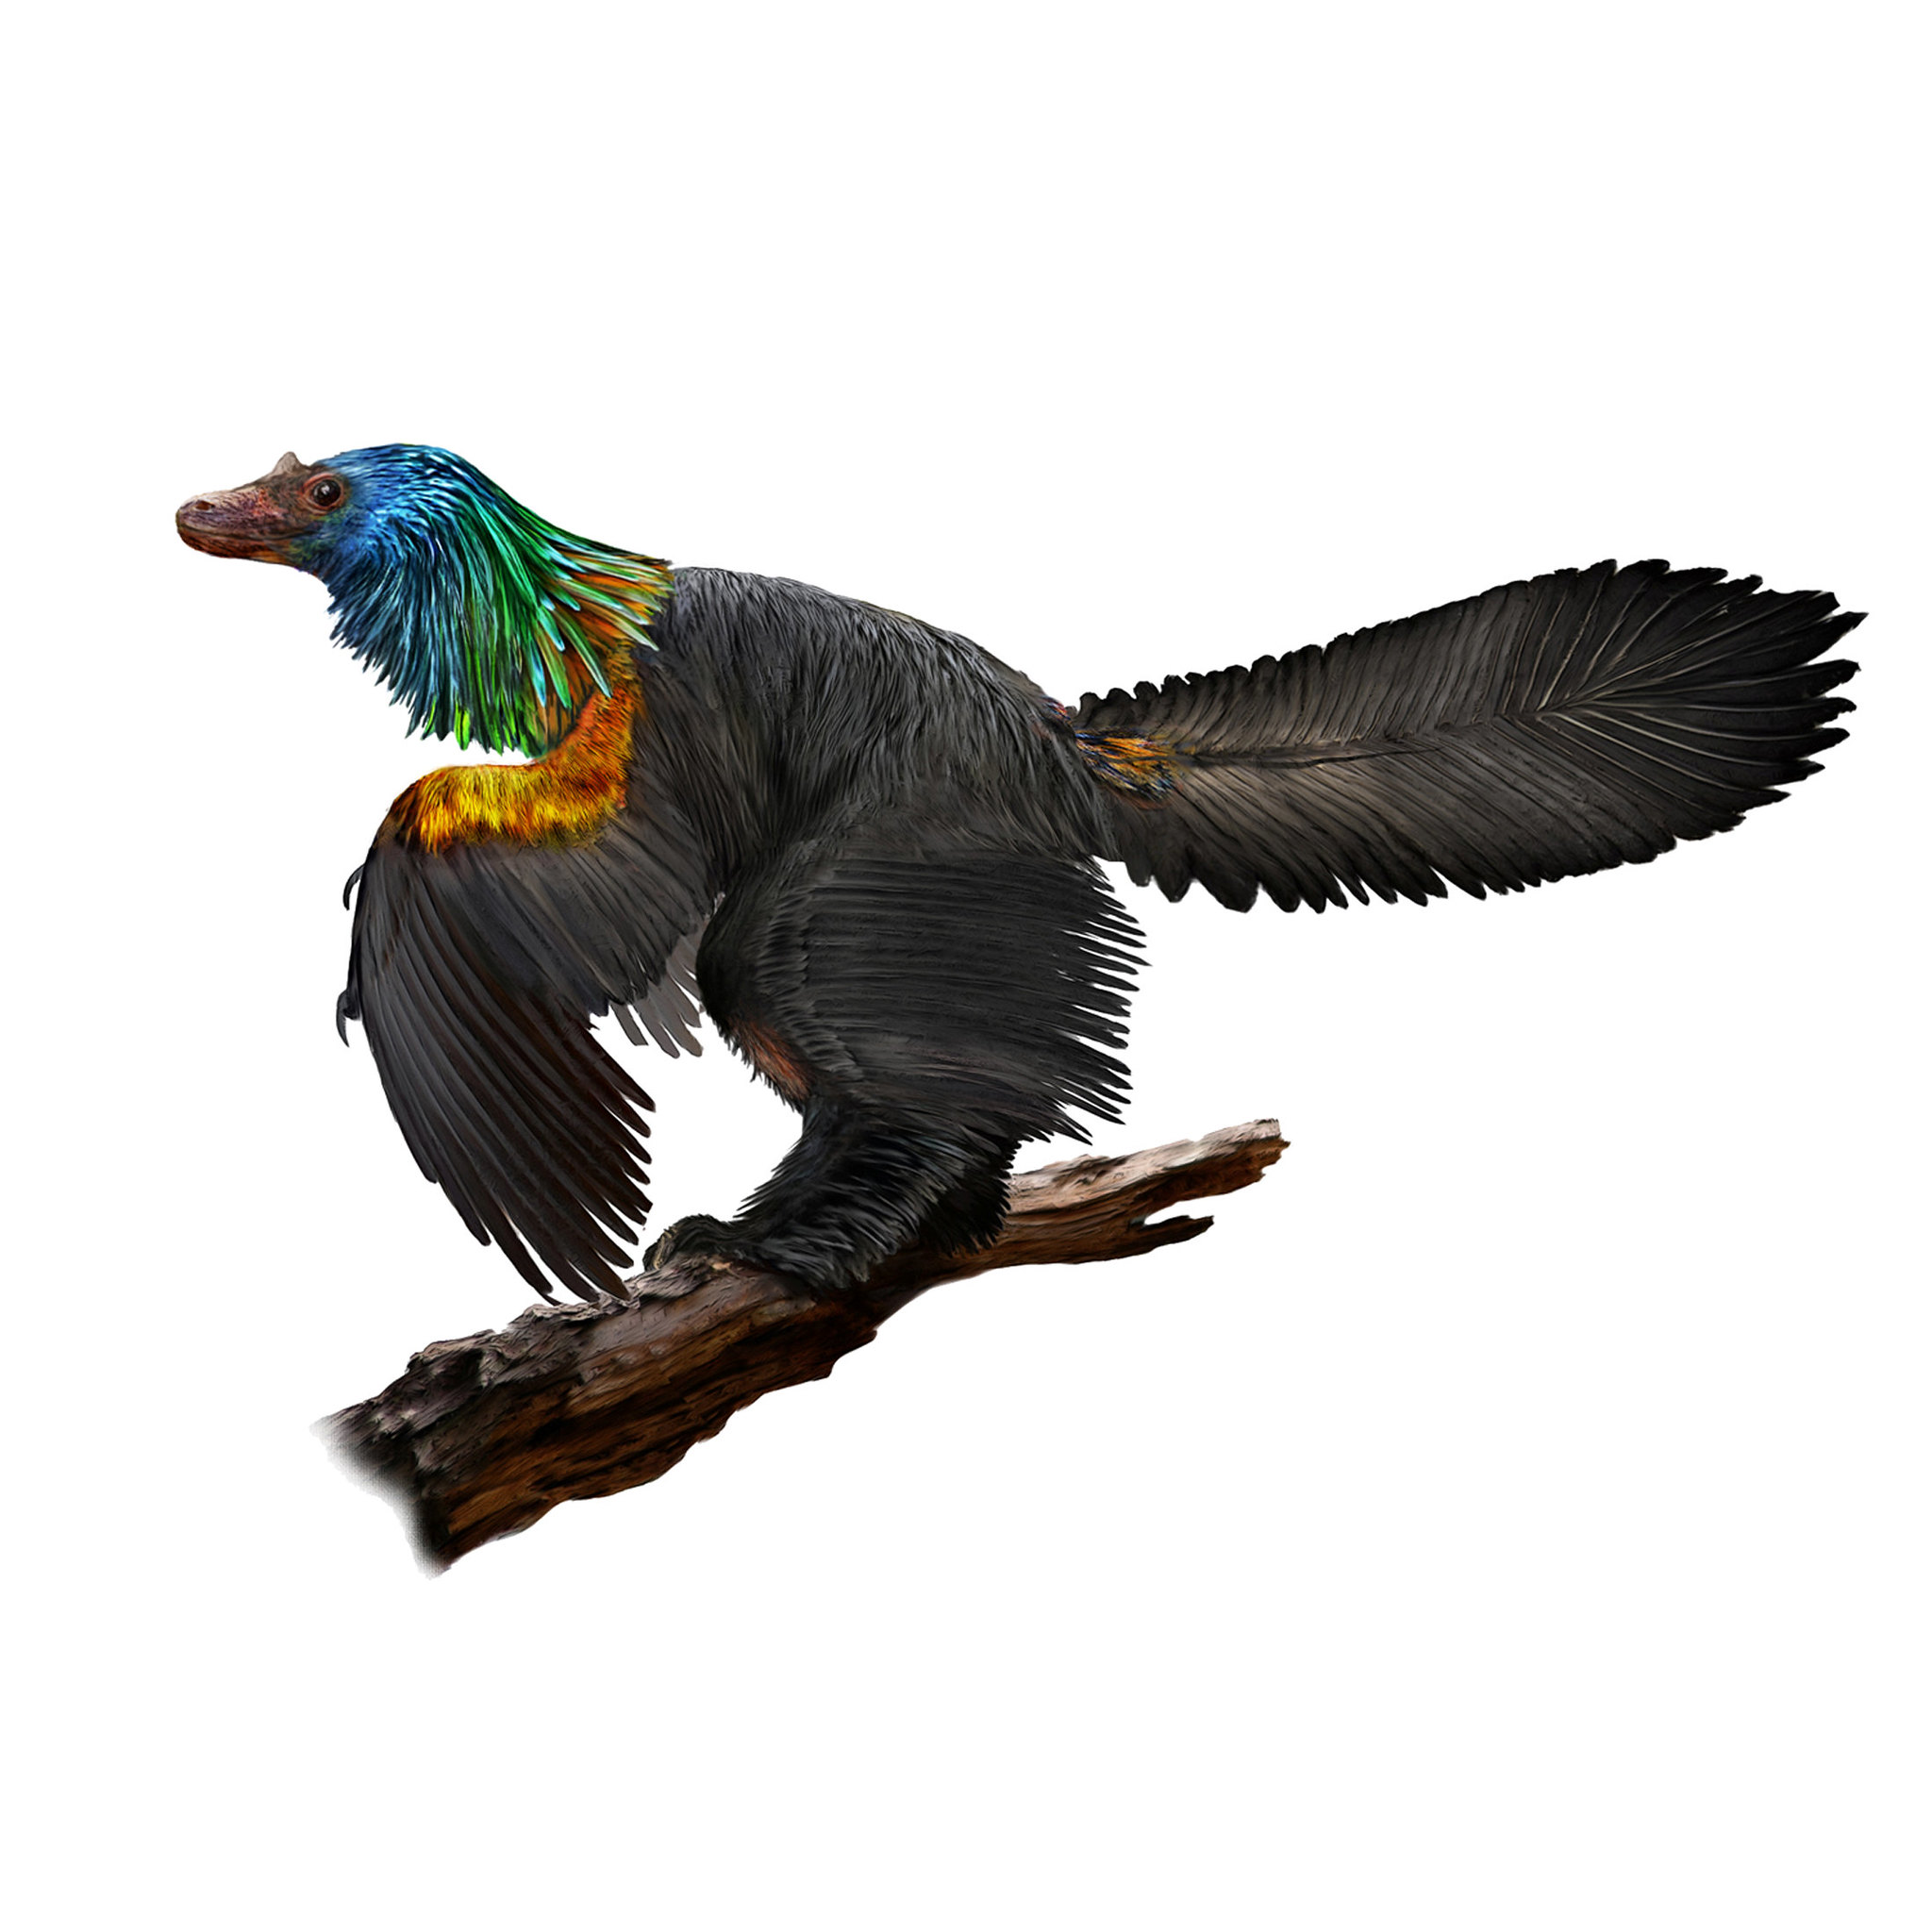 New dinosaur species with colorful feathers discovered in China